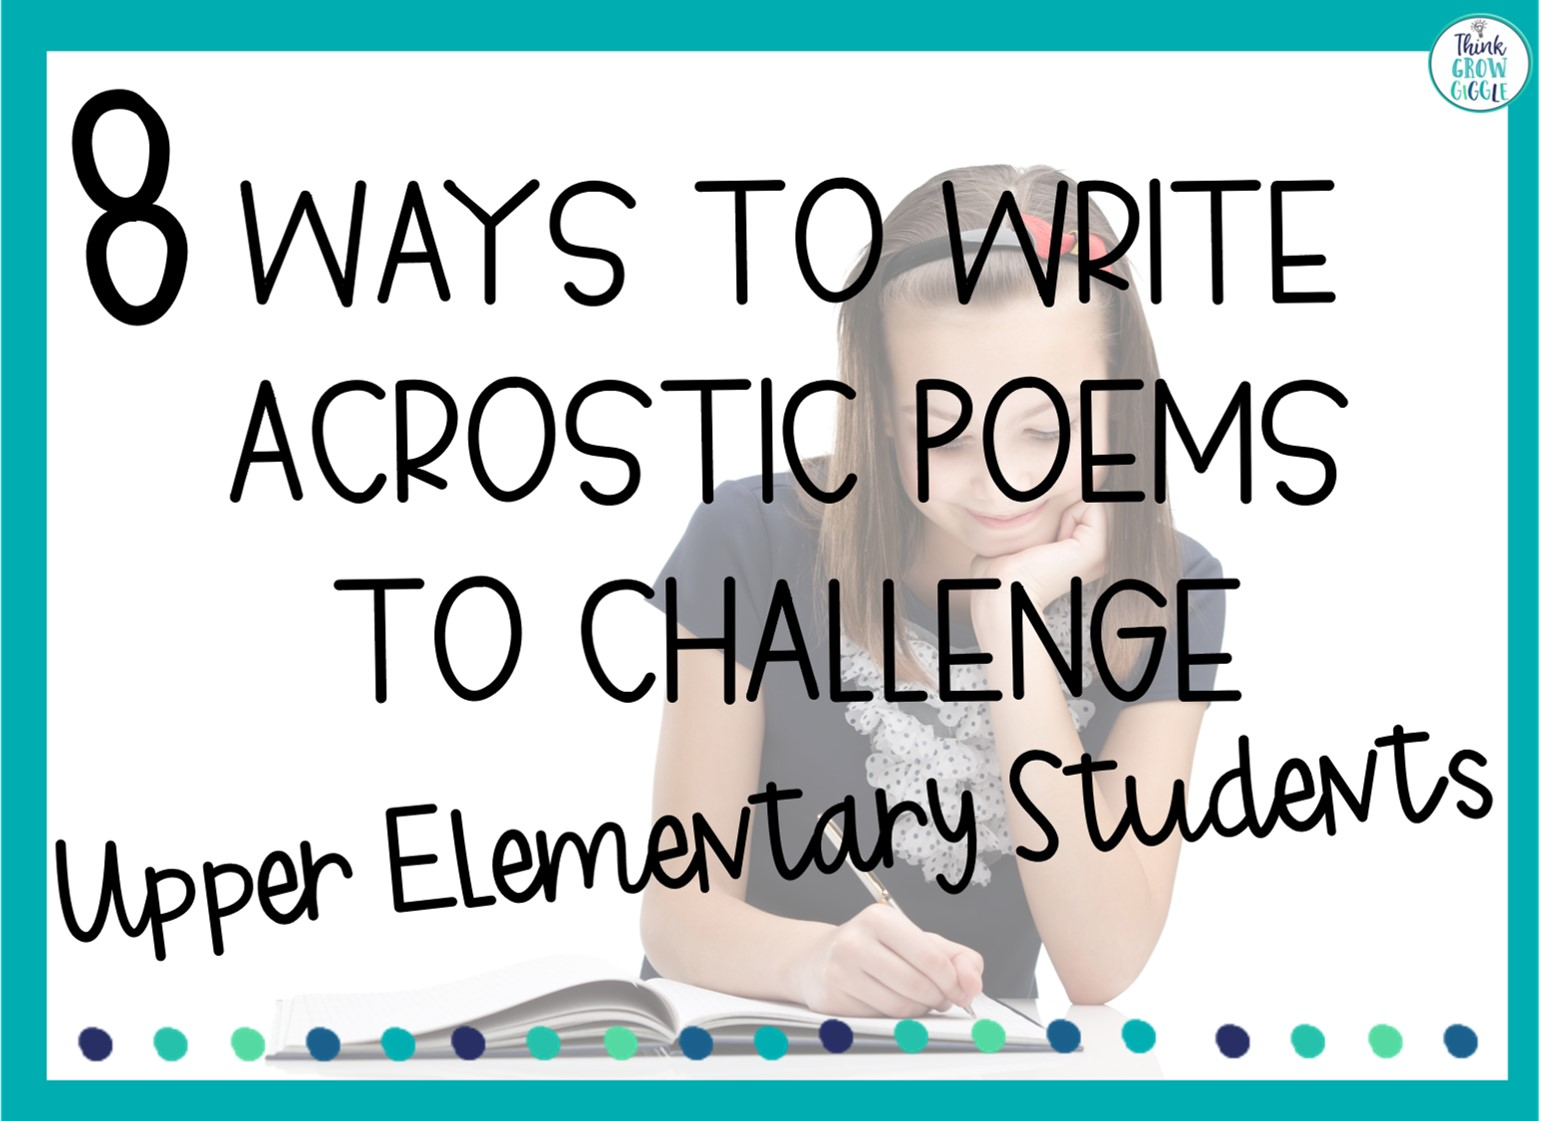 medium resolution of 8 Ways to Write Acrostic Poems to Challenge Upper Elementary Students -  Think Grow Giggle